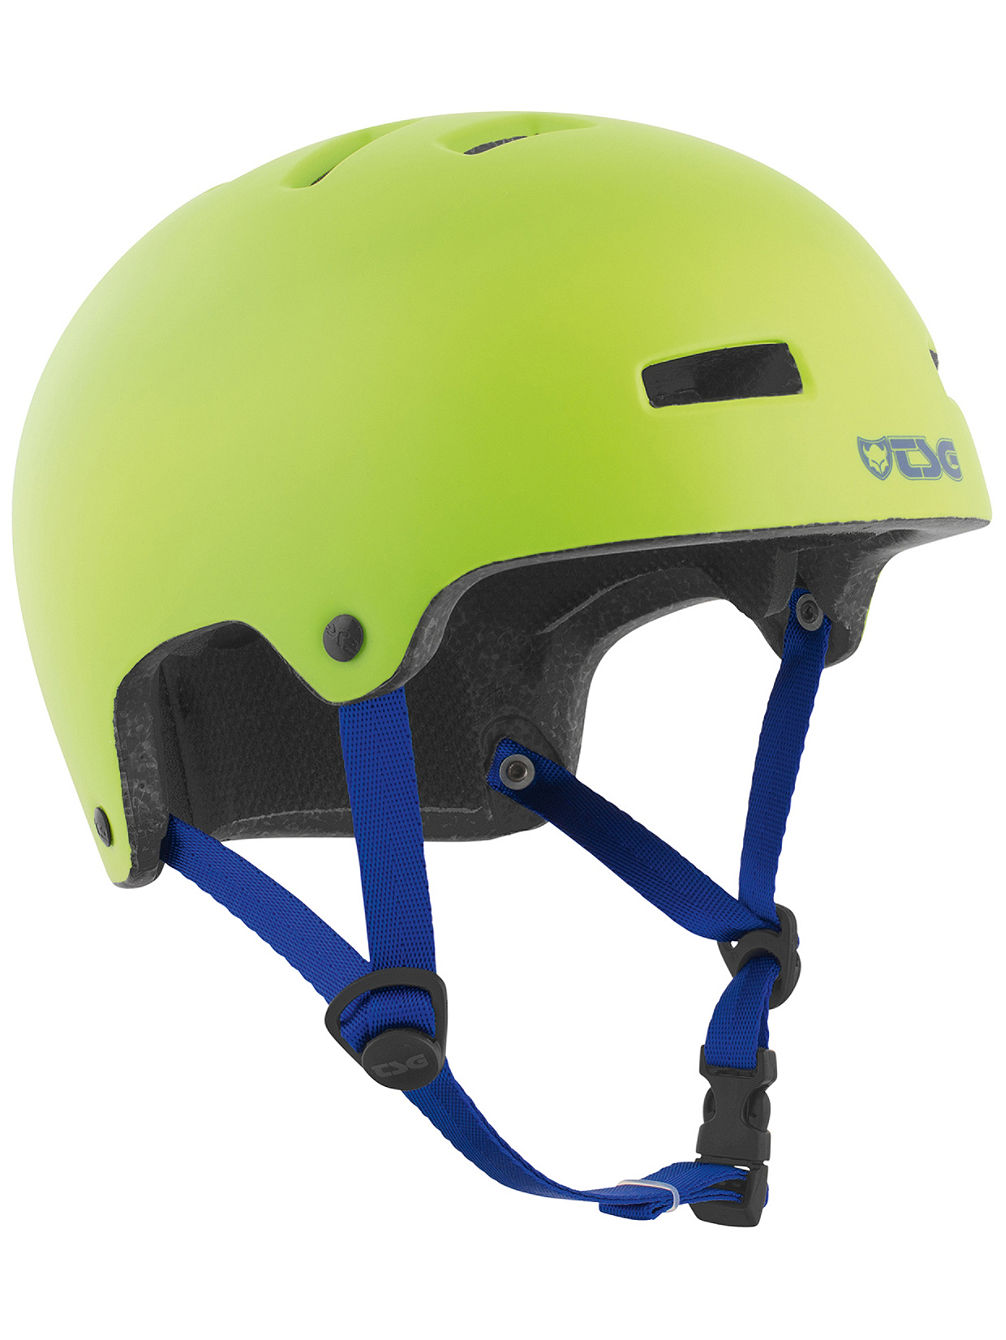 Nipper Maxi Skate Helmet Youth Youth